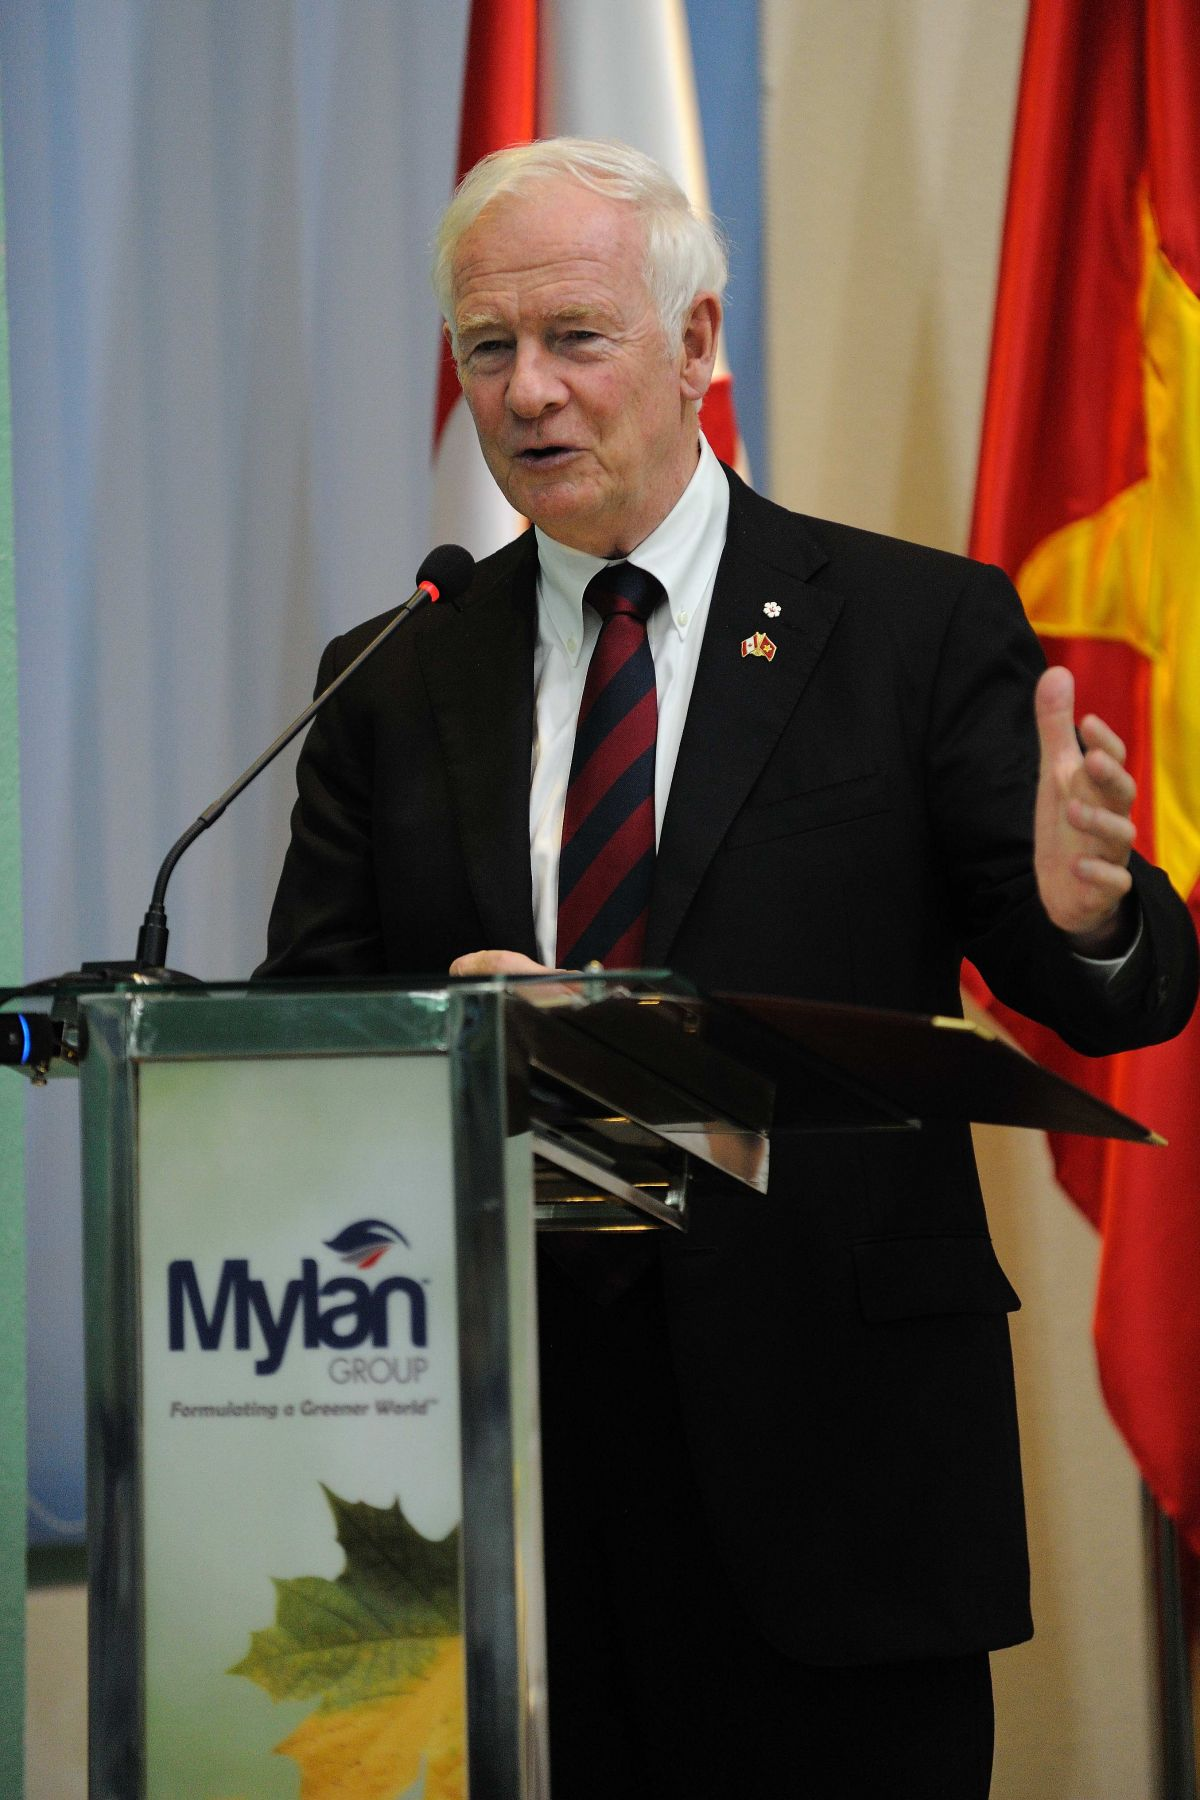 The Governor General and Canadian delegates participated in a panel discussion on skills training with Vietnamese counterparts. The Governor General delivered remarks on education and innovation, as well as on Canada's contribution to development co-operation, to students from Tra Vinh University and other employers.